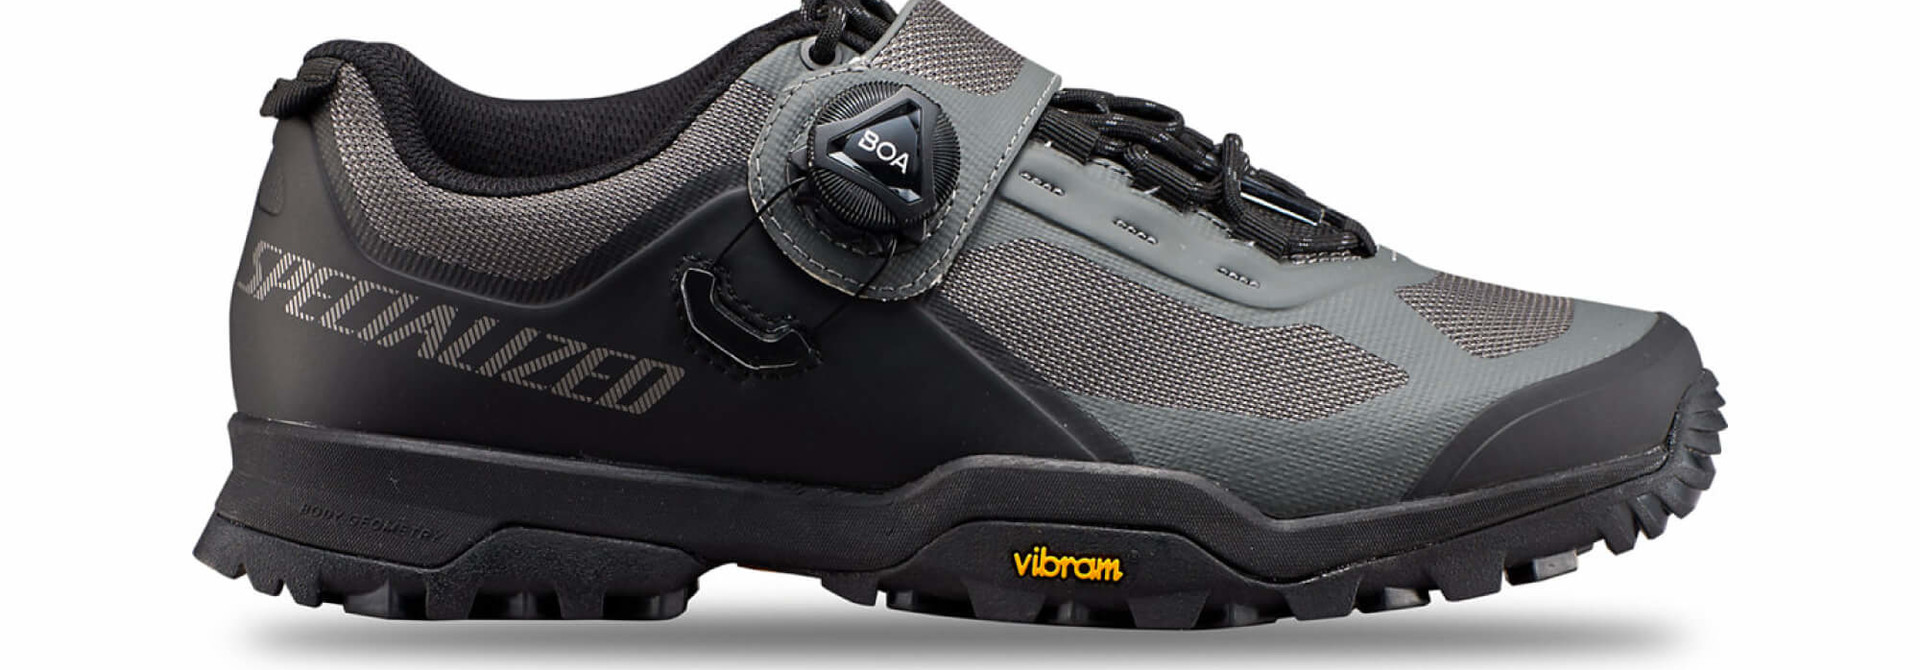 Rime 2.0 Mountain Bike Shoes